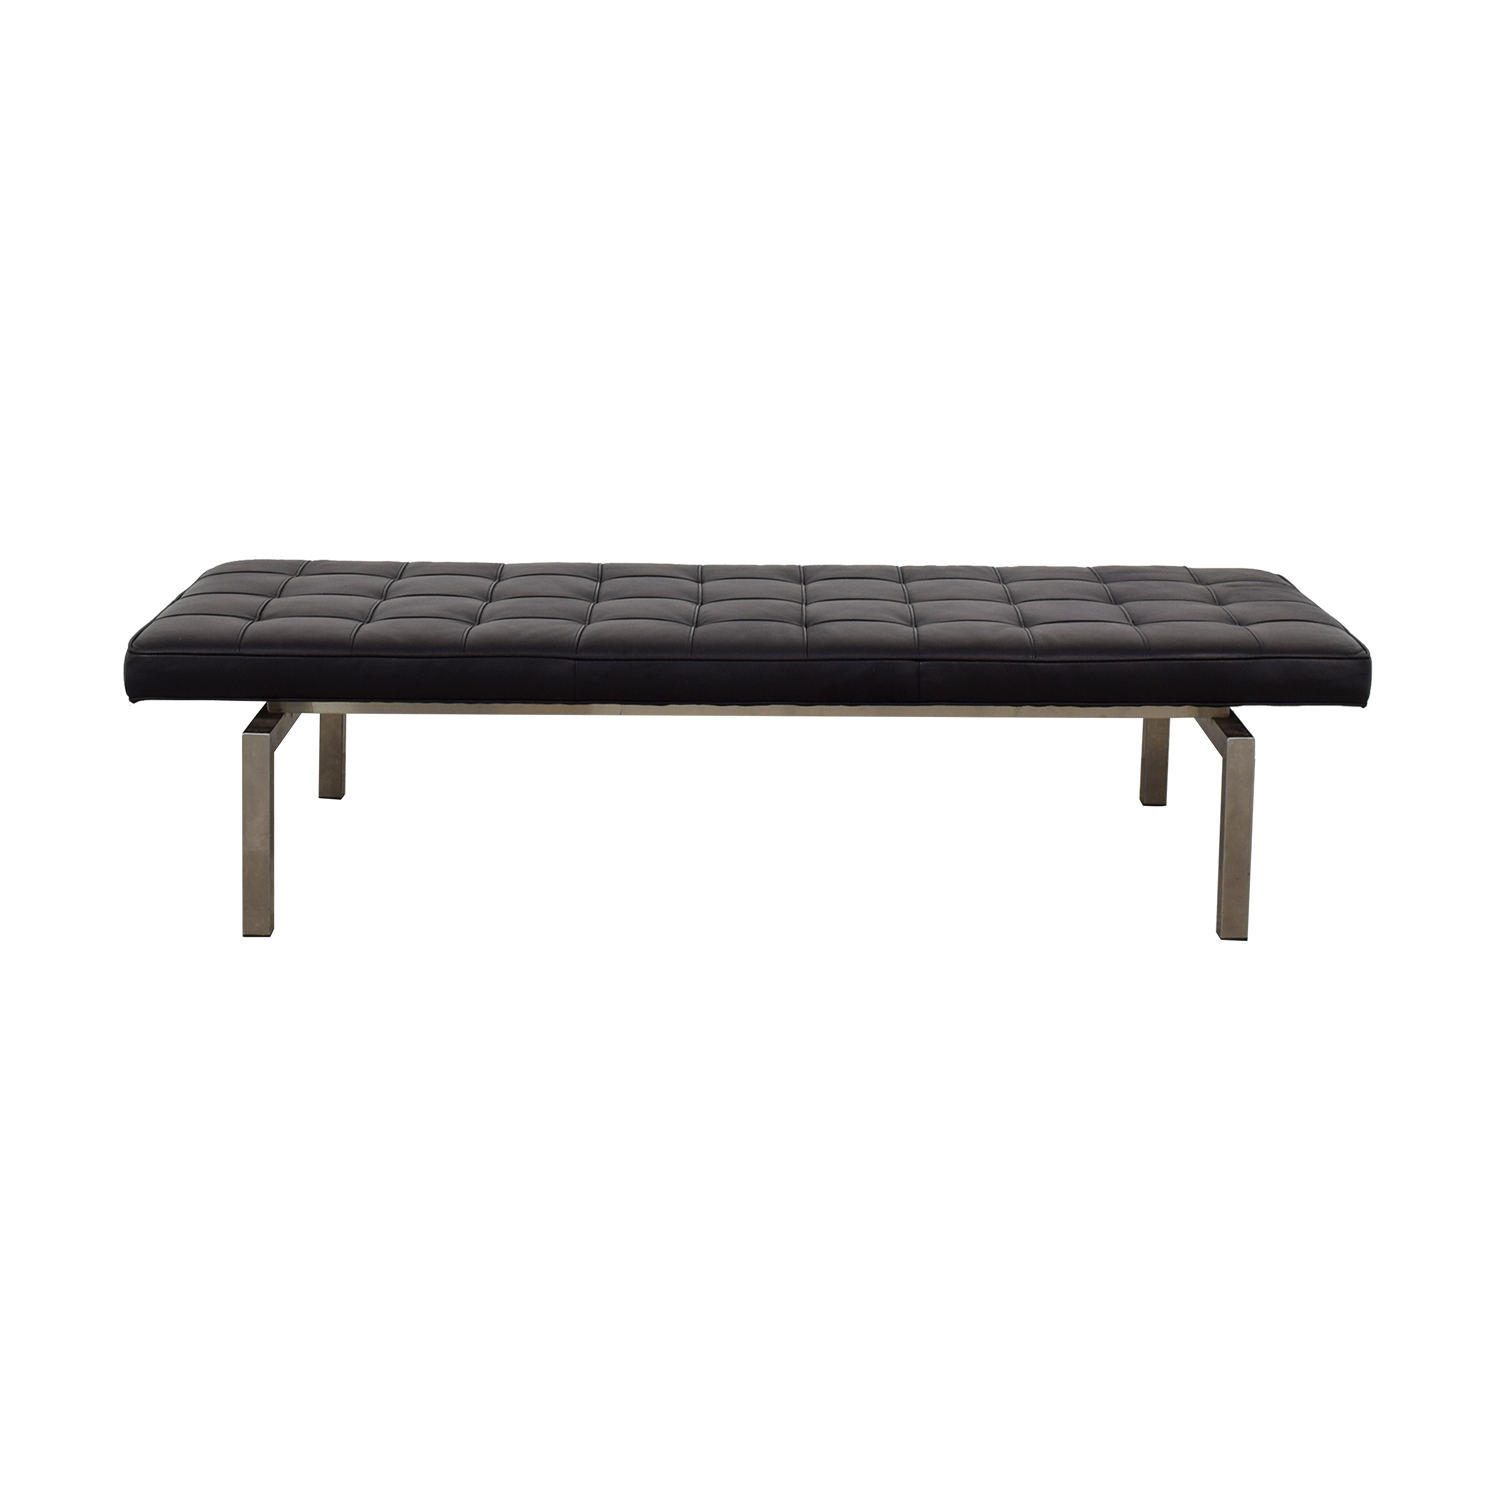 American Leather American Leather Black Tufted Leather Bench on sale